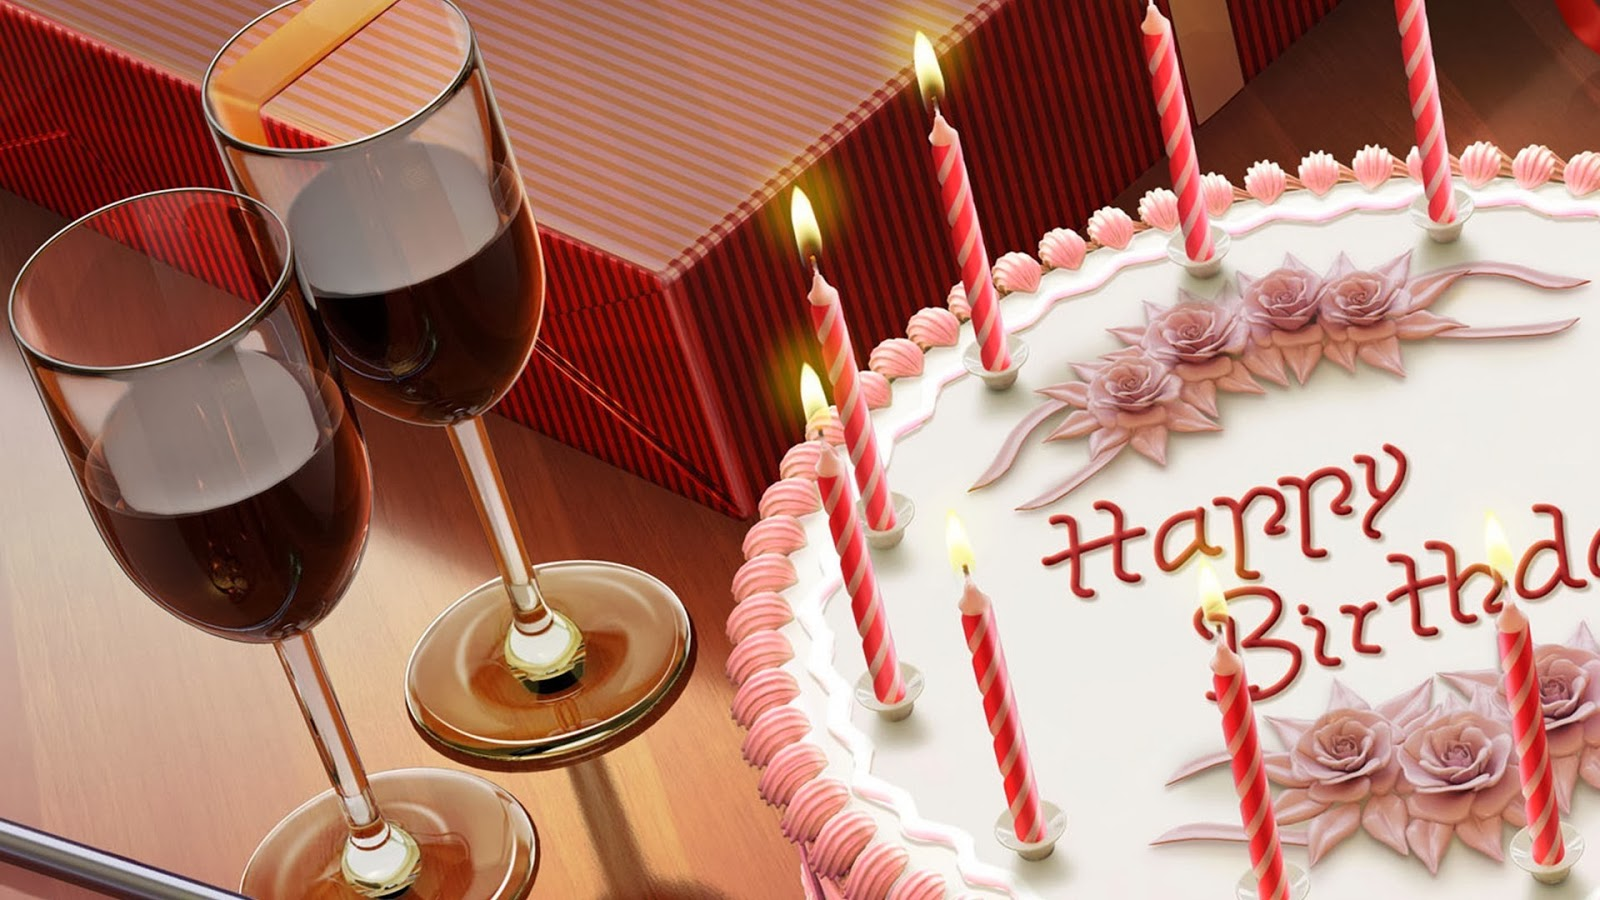 birthday wishes hd images free download ; happy-birthday-wallpapers-free-download-3